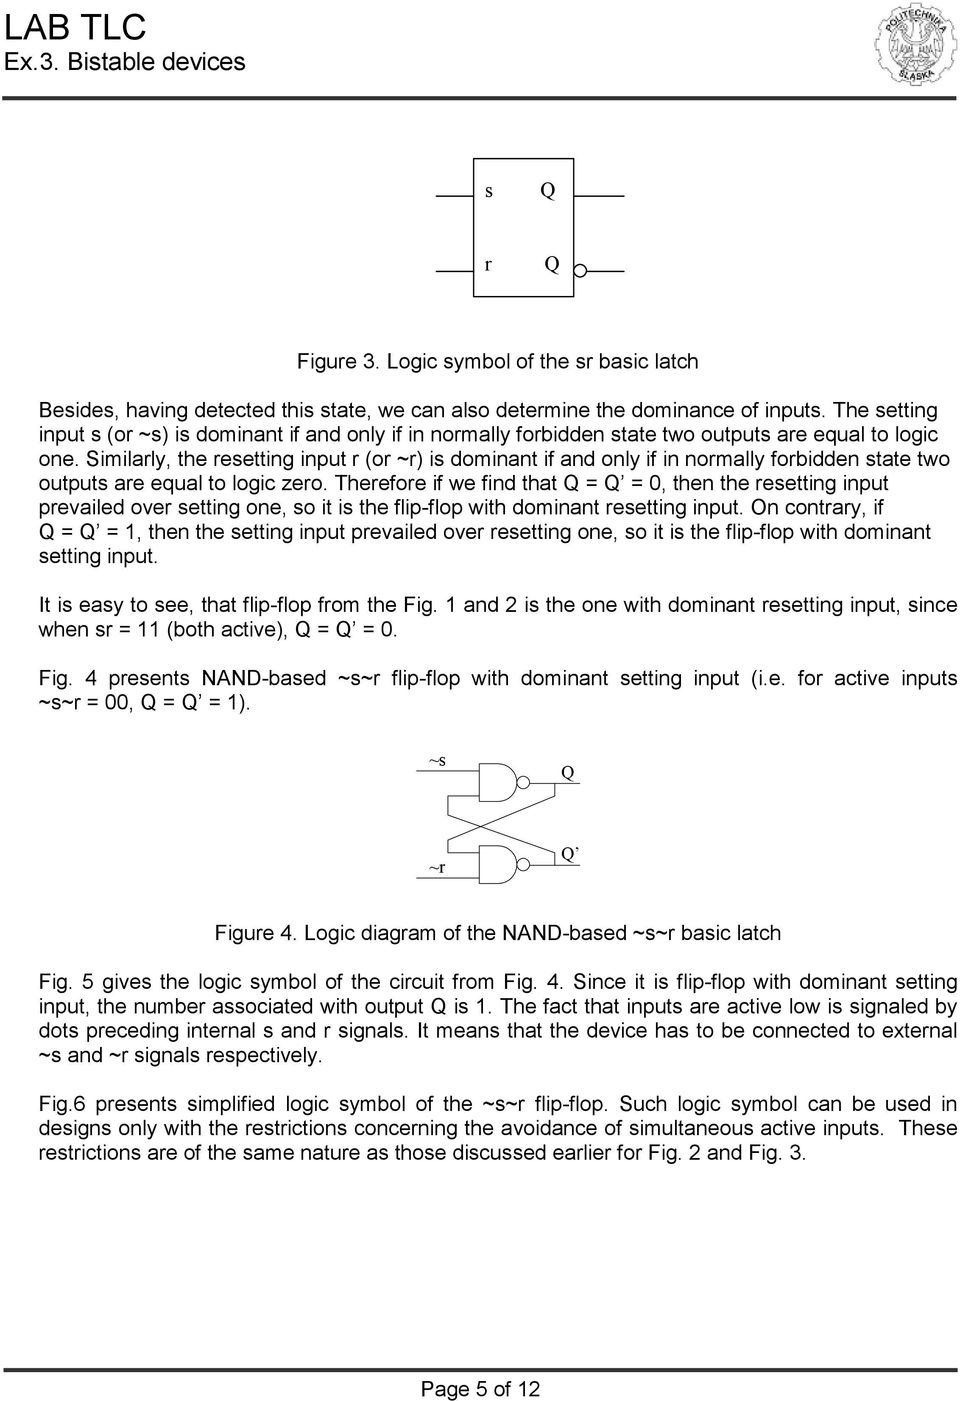 Theory Of Logic Circuits Laboratory Manual Exercise 3 Pdf Bistable Flip Flop Circuit Similarly The Resetting Input R Or Is Dominant If And Only